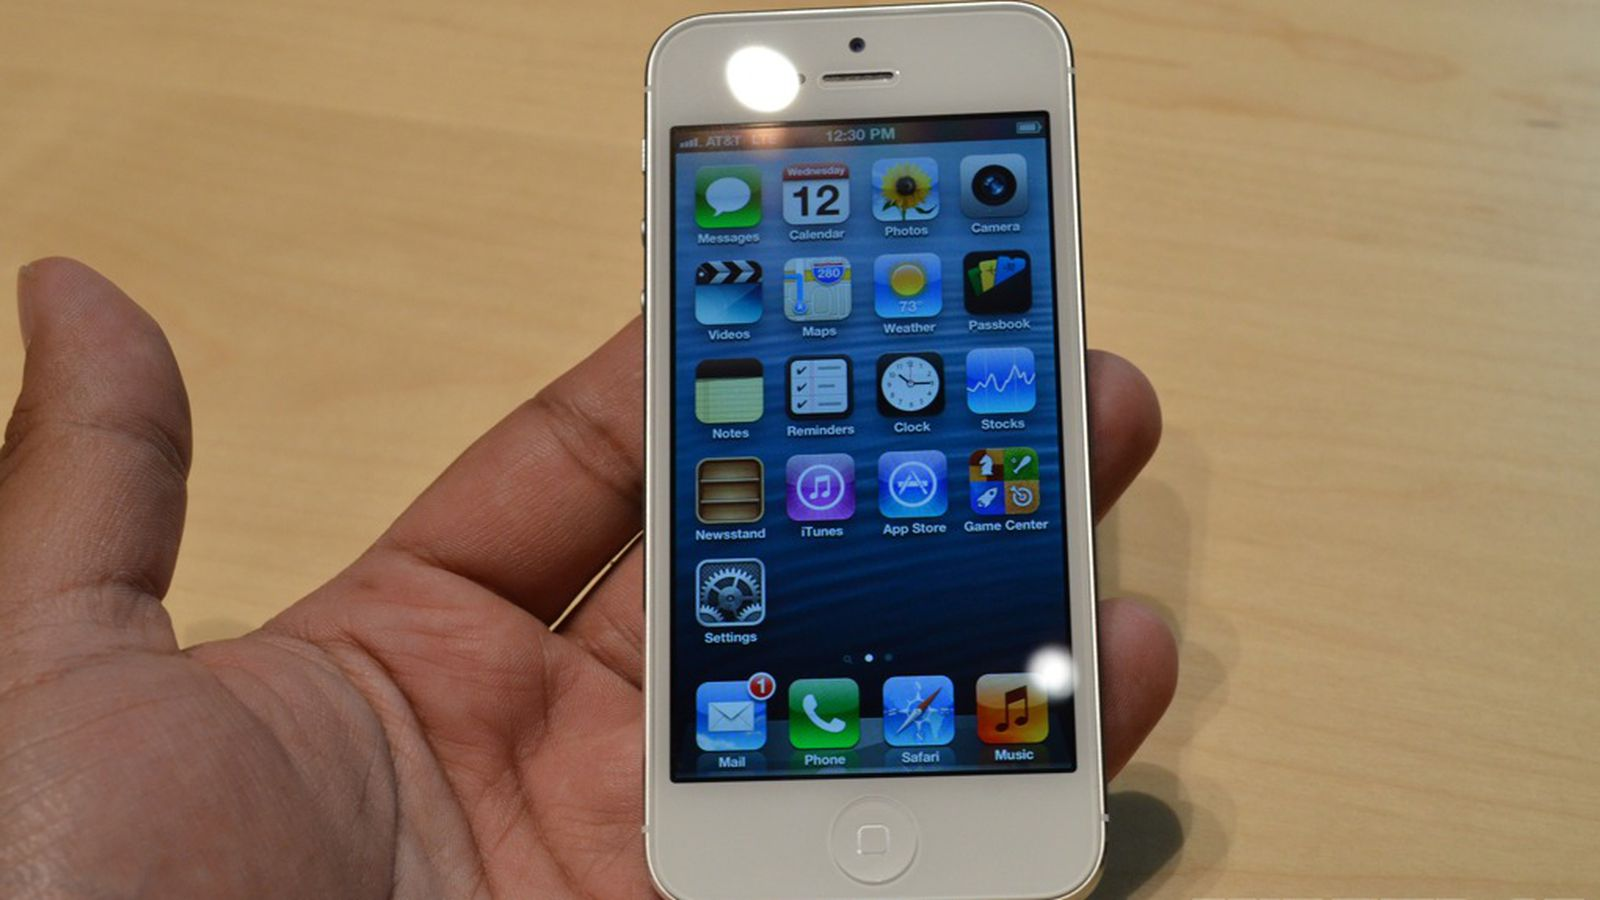 iphone 4s at t iphone 5 won t support simultaneous voice and data on 3026